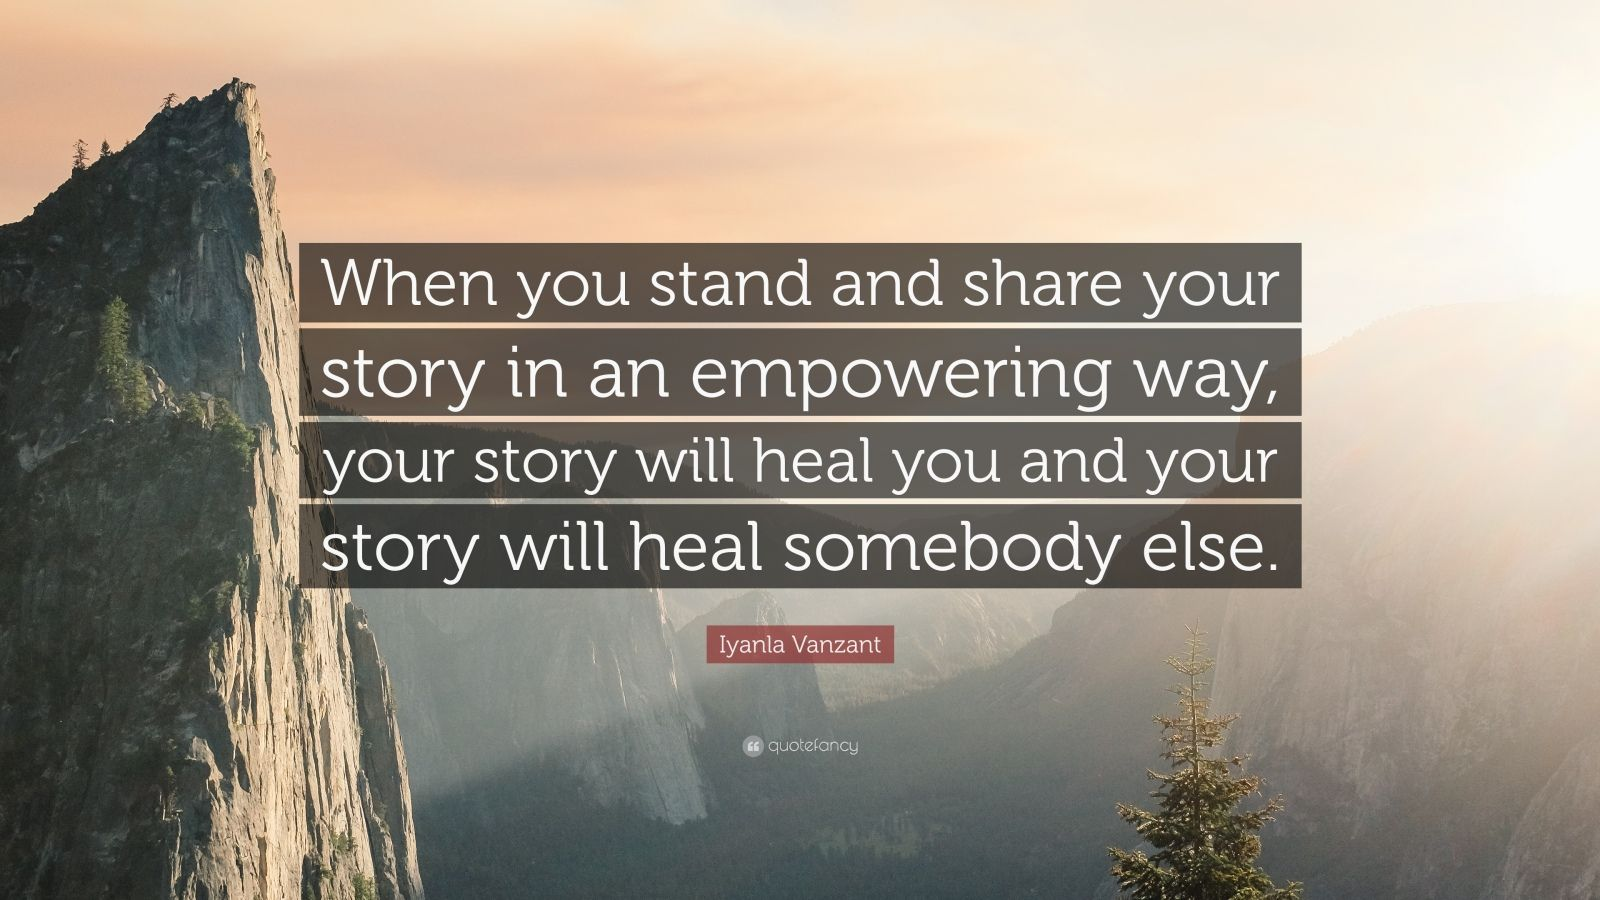 """Iyanla Vanzant Quote: """"When you stand and share your story in an empowering way, your story will heal you and your story will heal somebody else."""""""